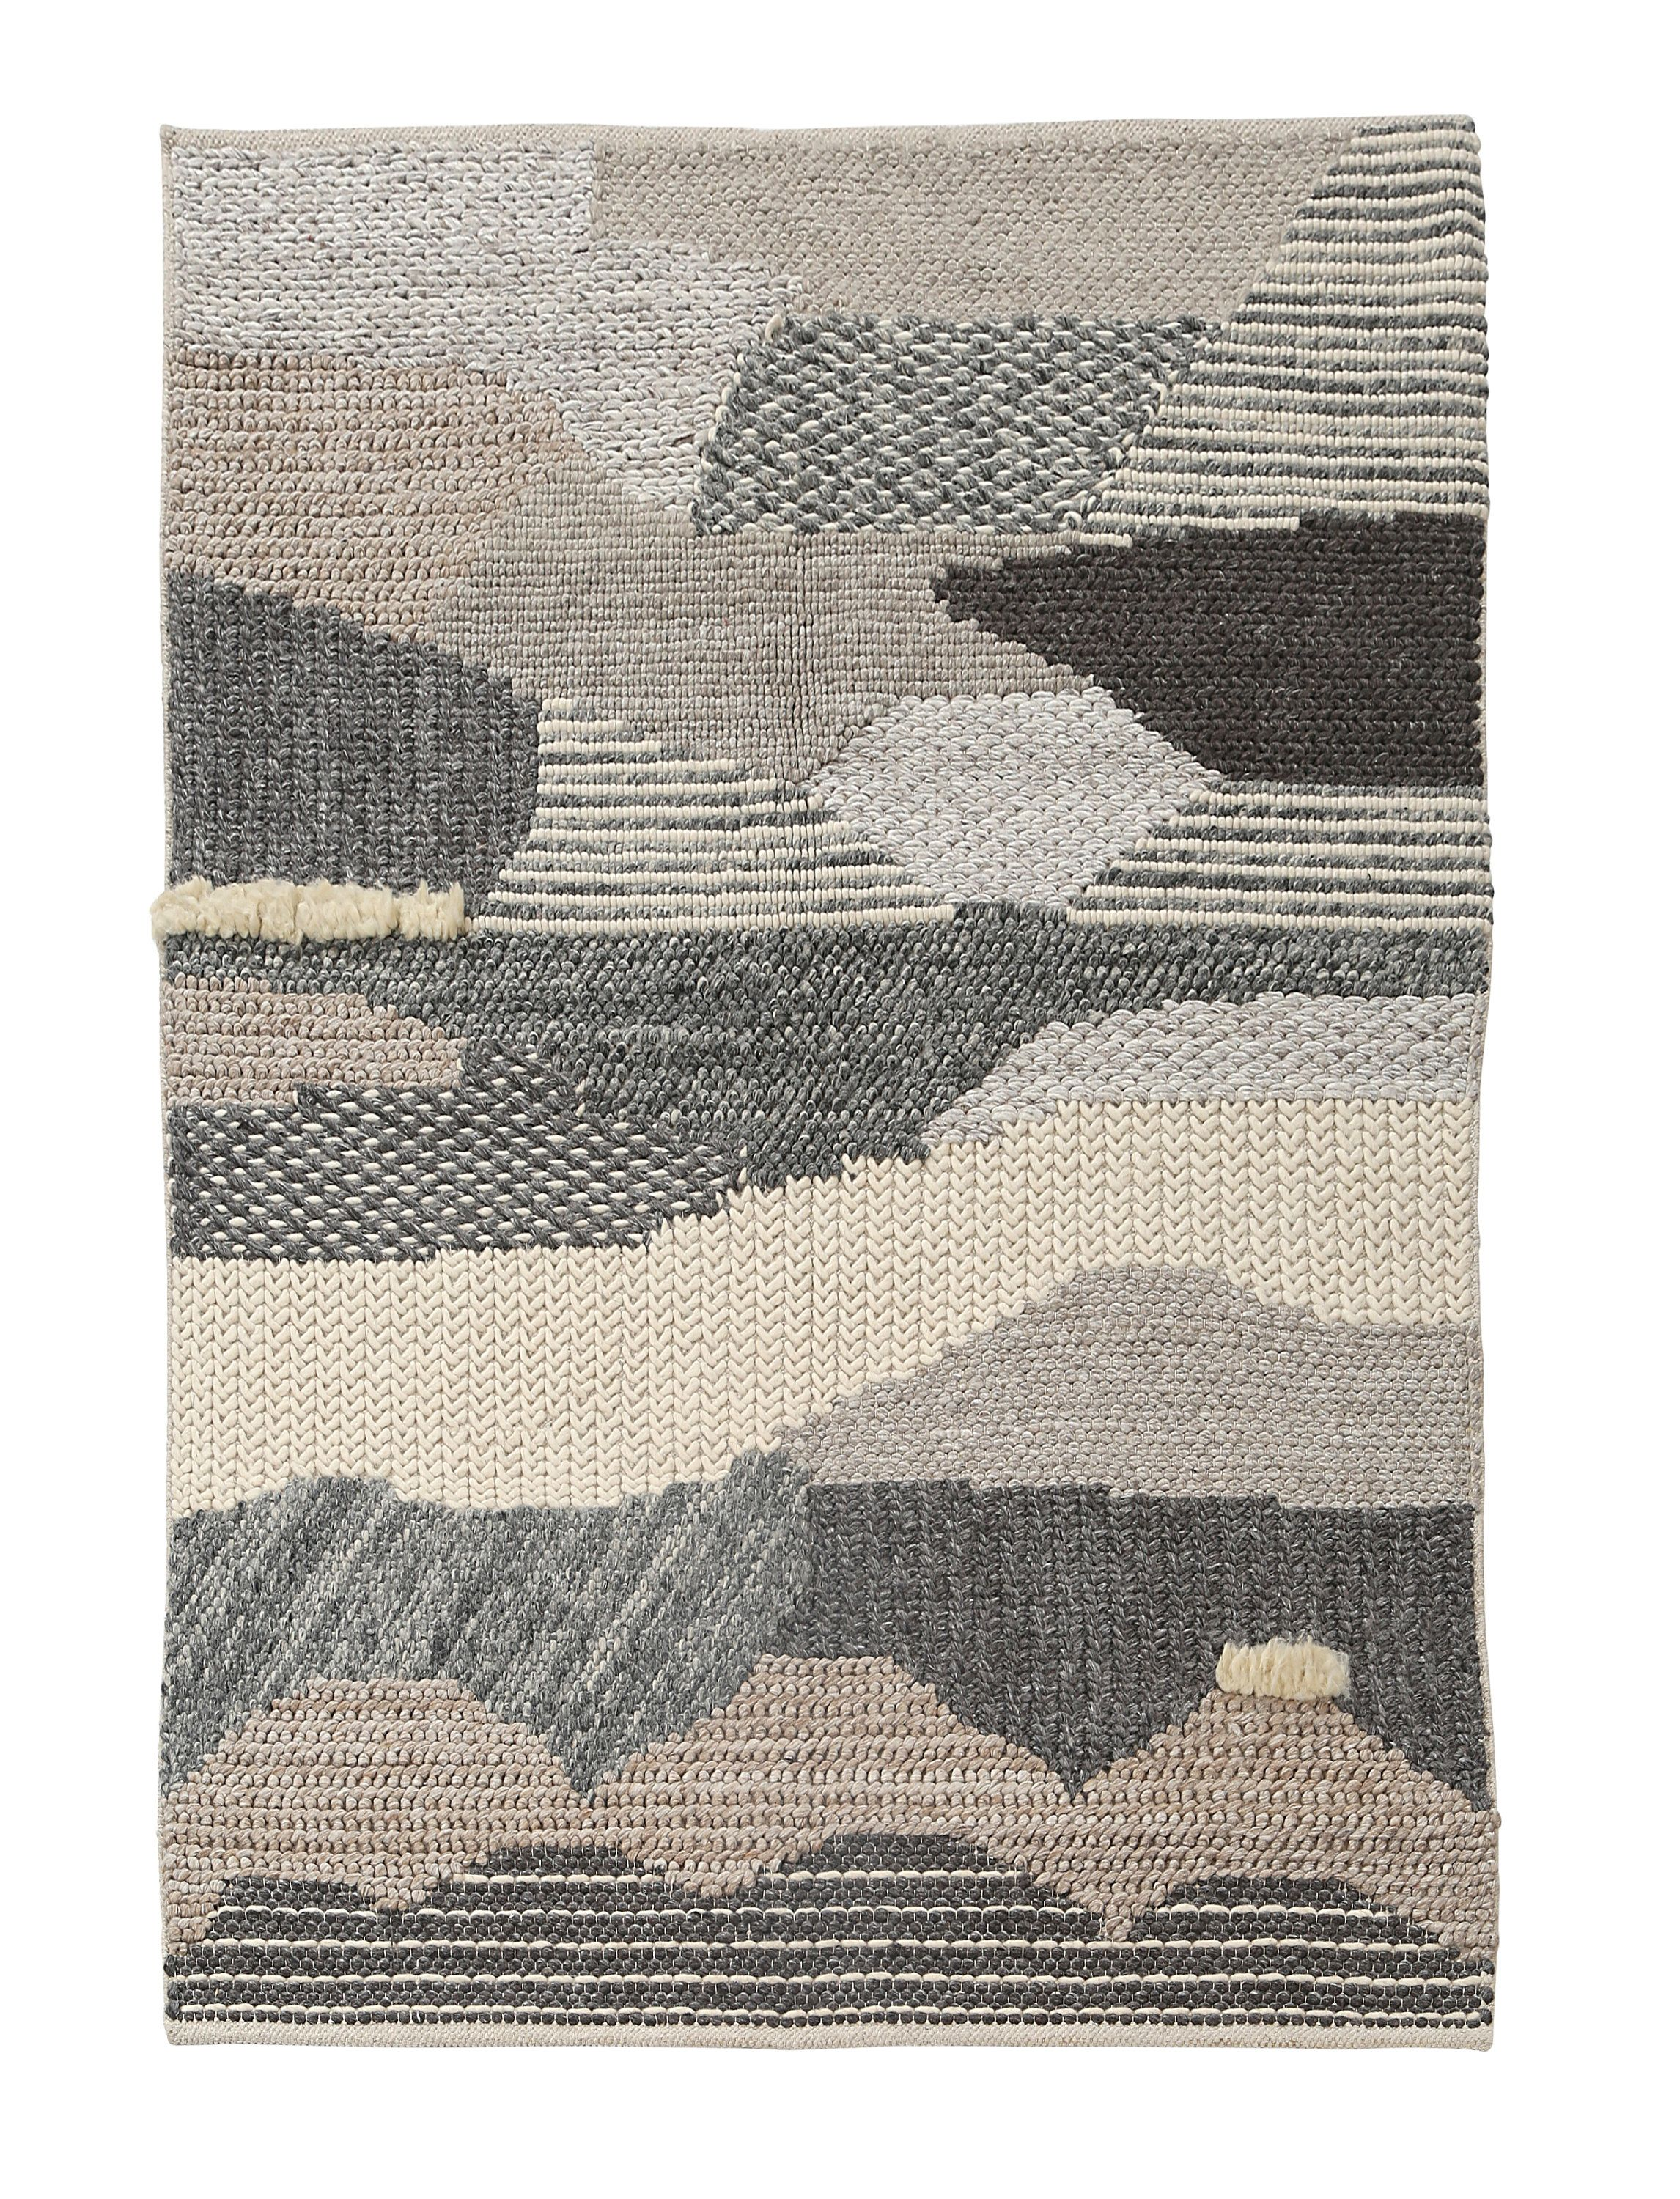 Designer Hand Woven Wool Rug With Various Weaving Technique Of Fine Natural Textured Wool Scandinavian Rug St Scandinavian Rug Hand Weaving Weaving Techniques